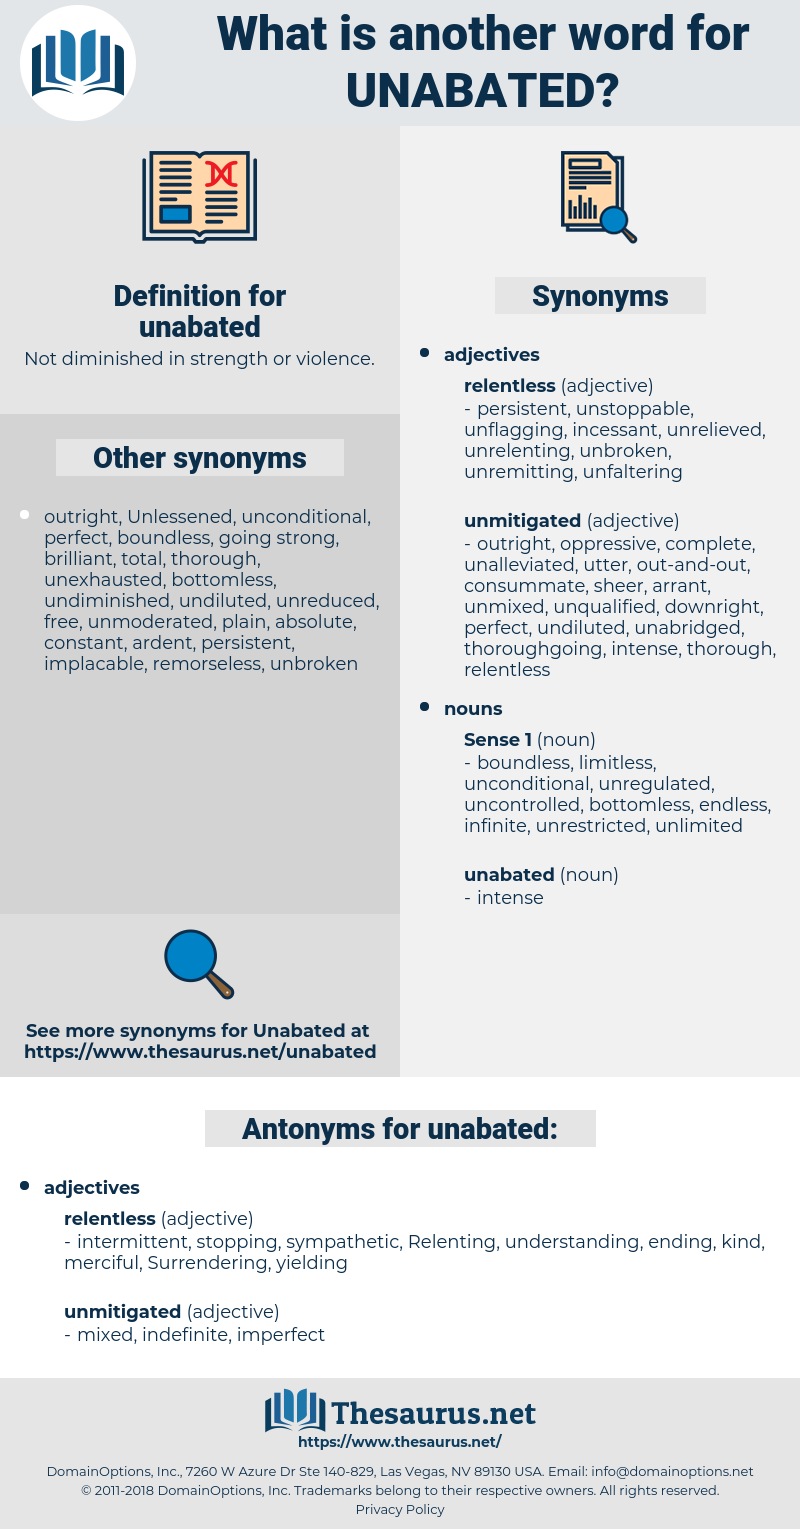 unabated, synonym unabated, another word for unabated, words like unabated, thesaurus unabated